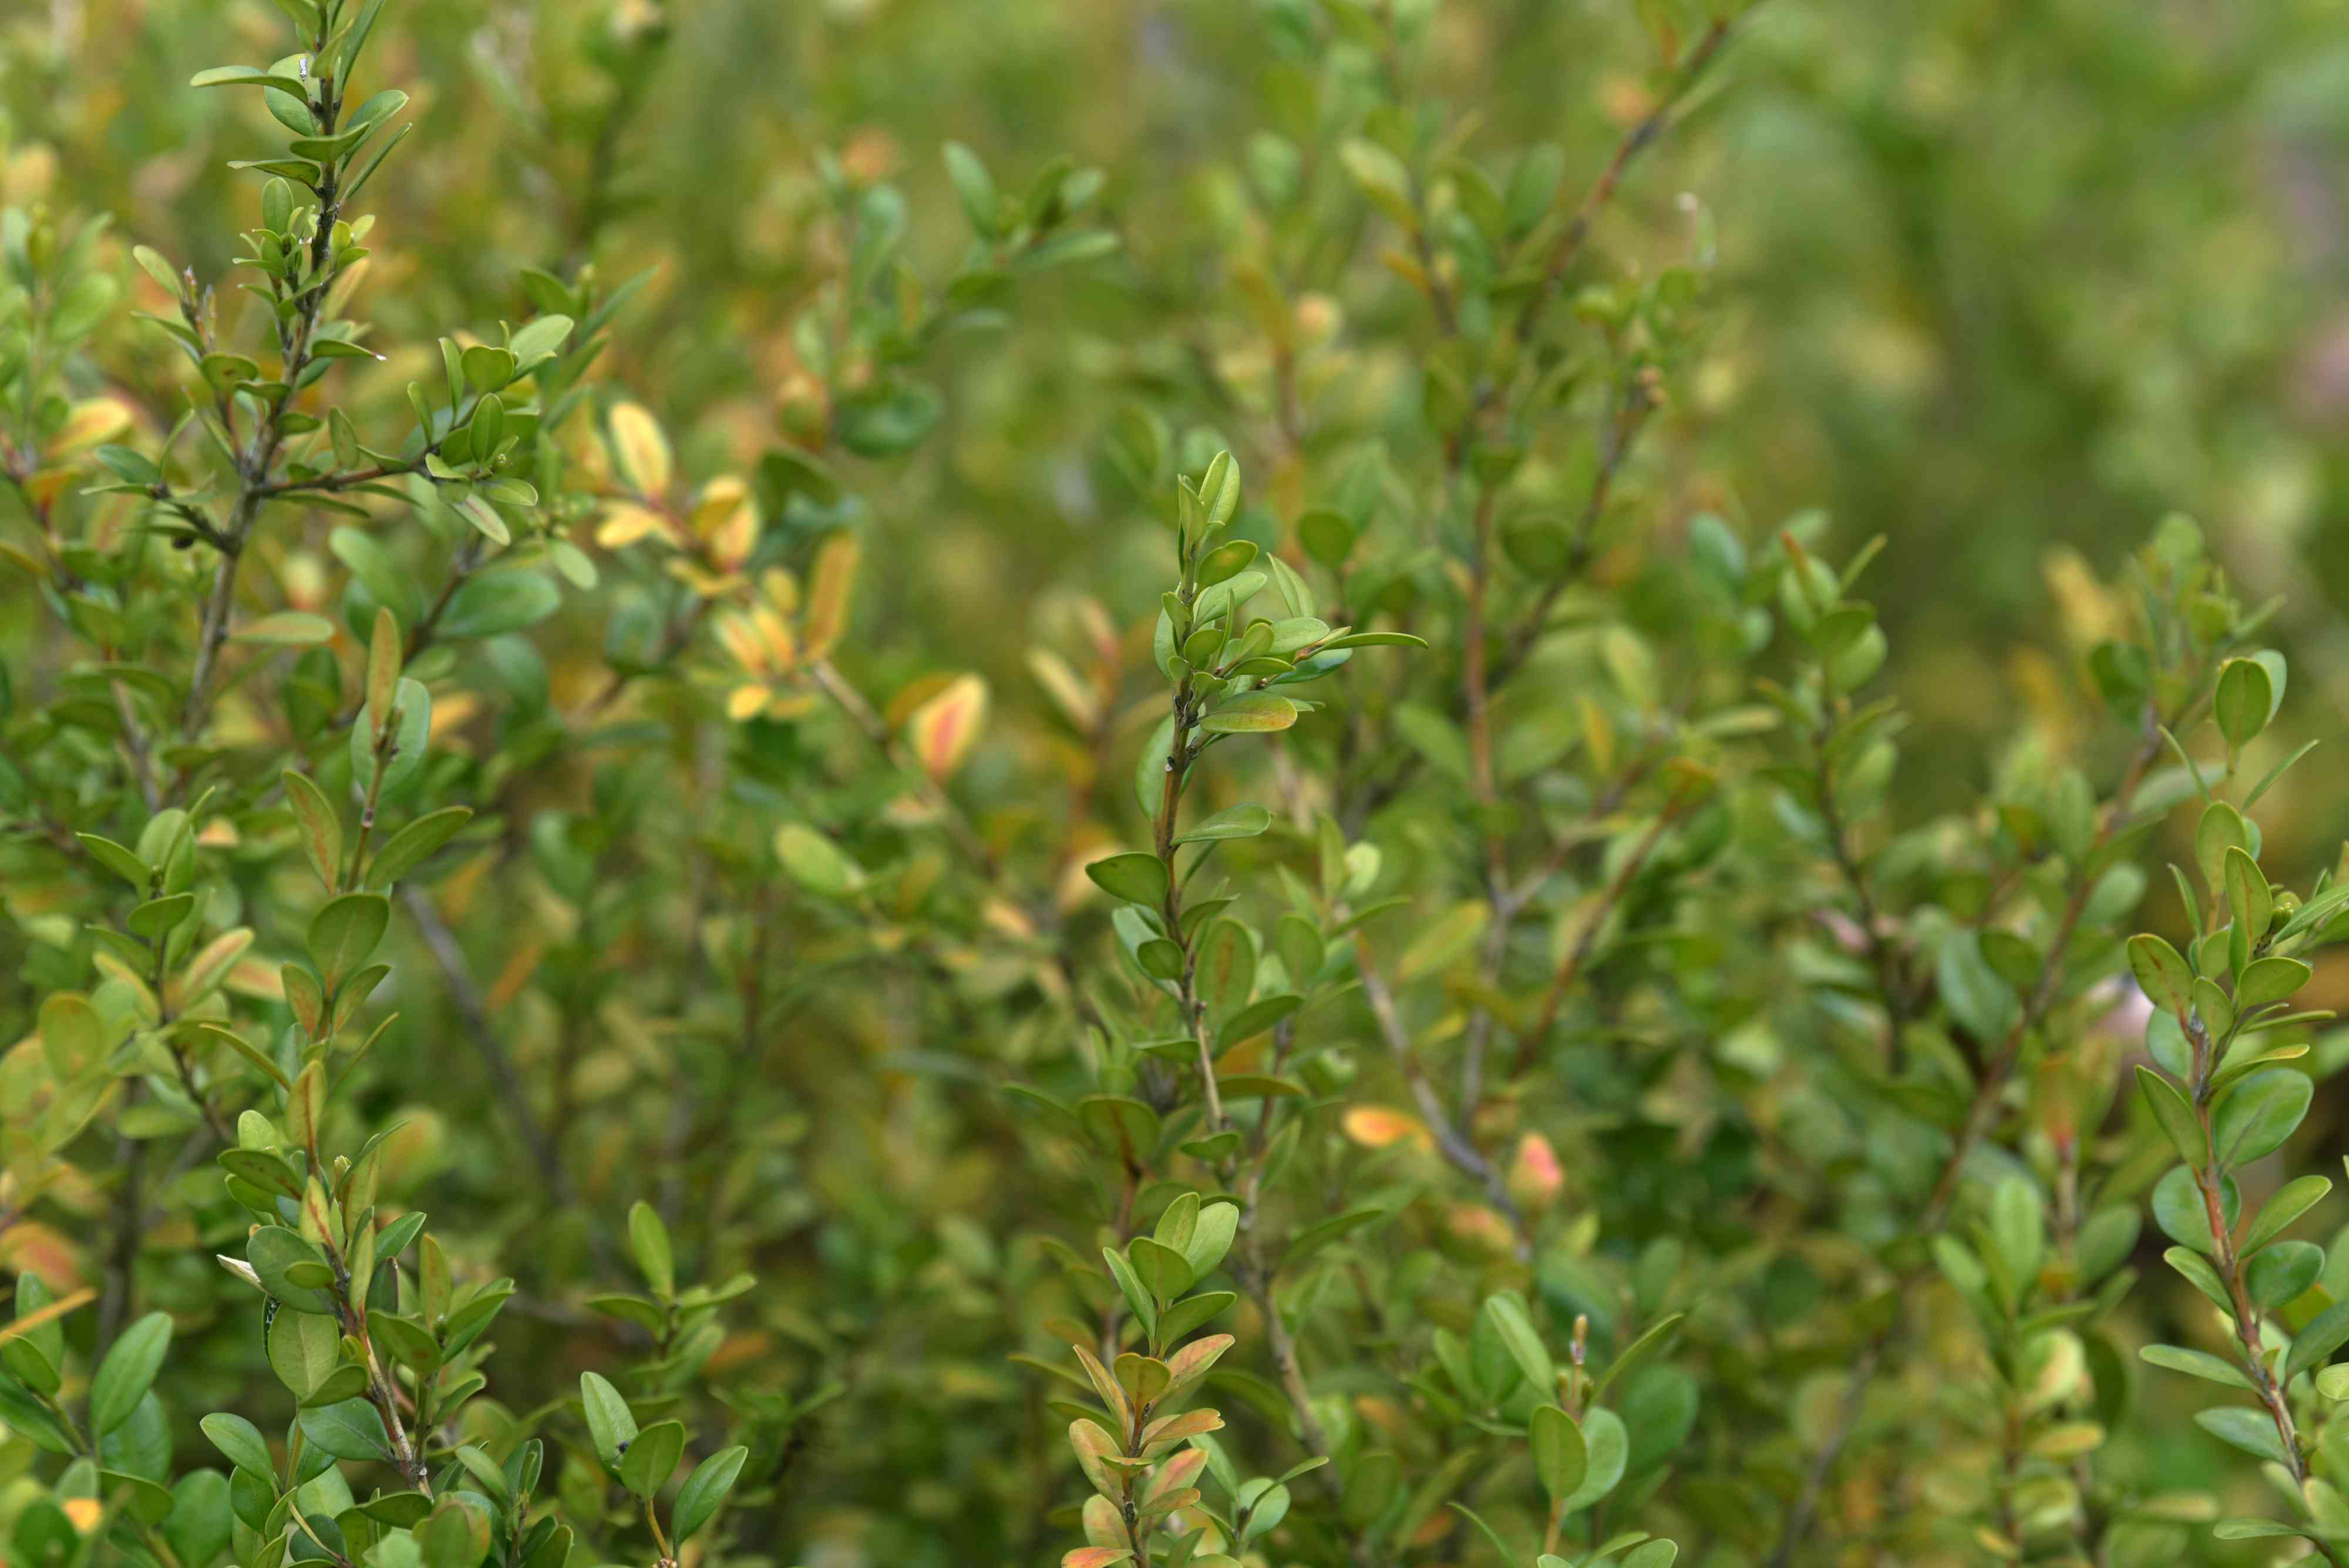 Winter gem boxwood shrub branches with small circular yellow-green leaves closeup